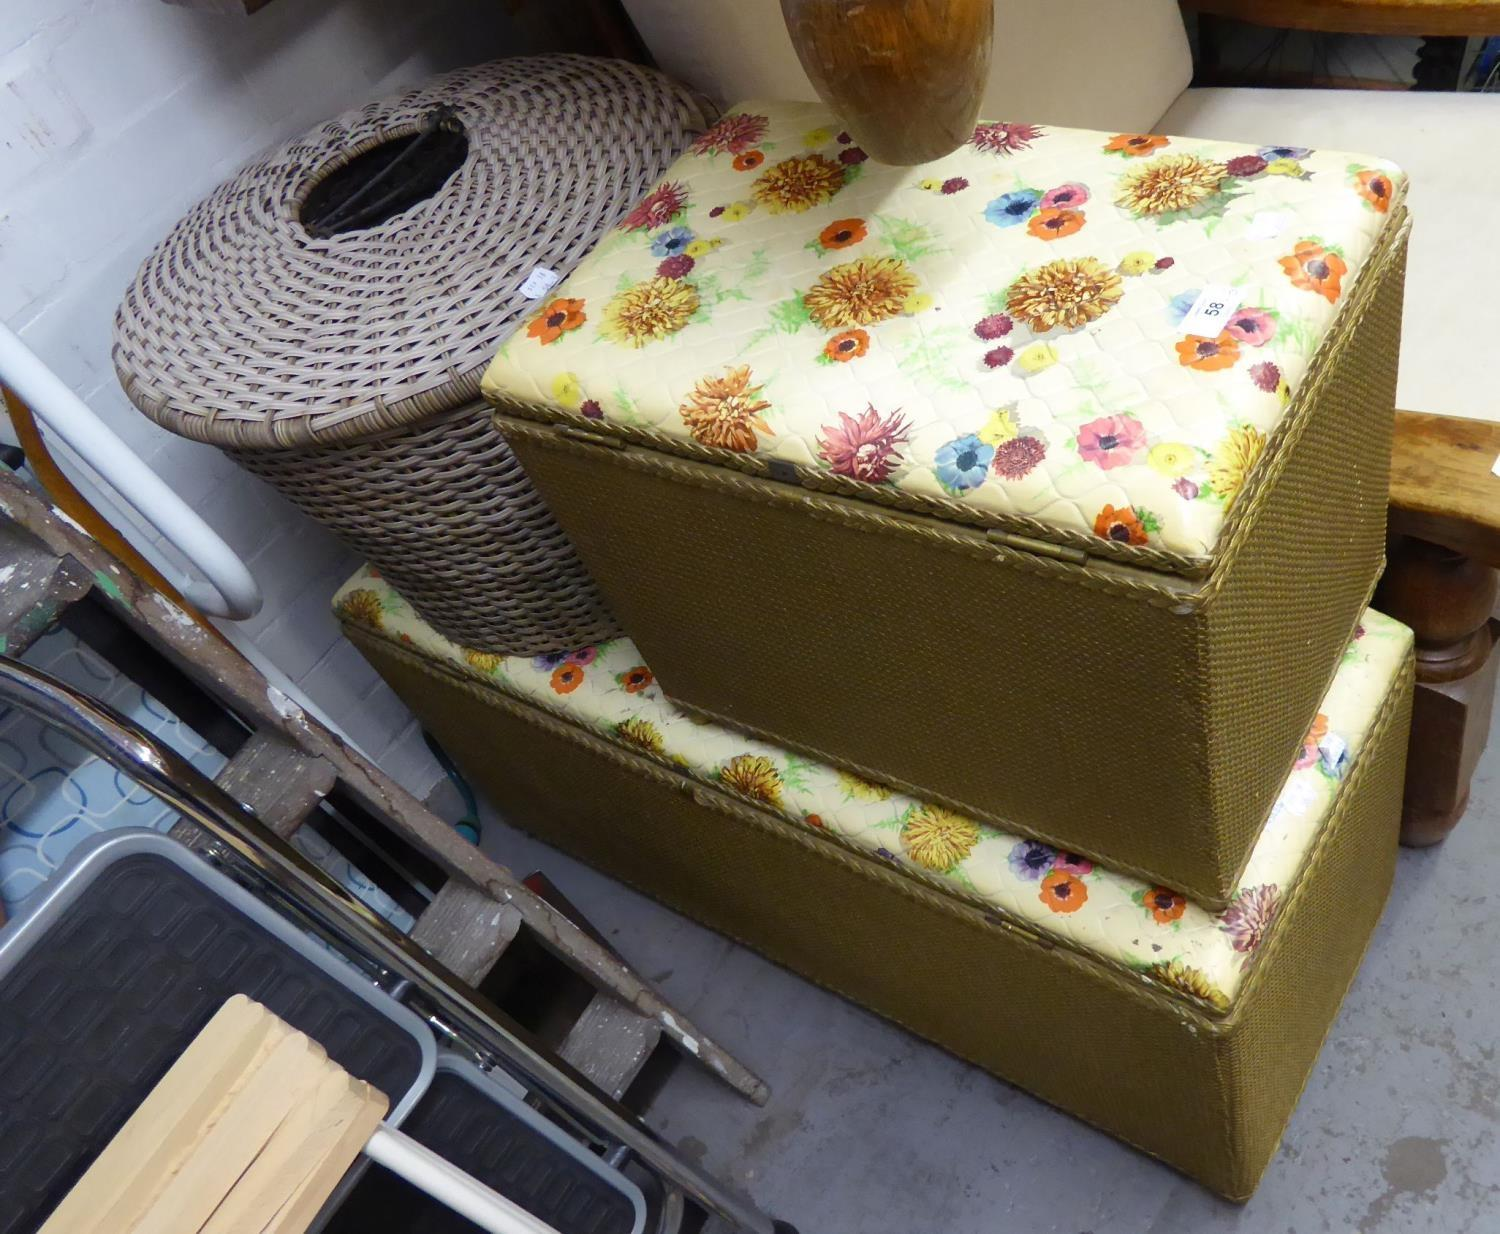 Lot 58 - LOOM BEDDING CHEST AND LAUNDRY BASKET